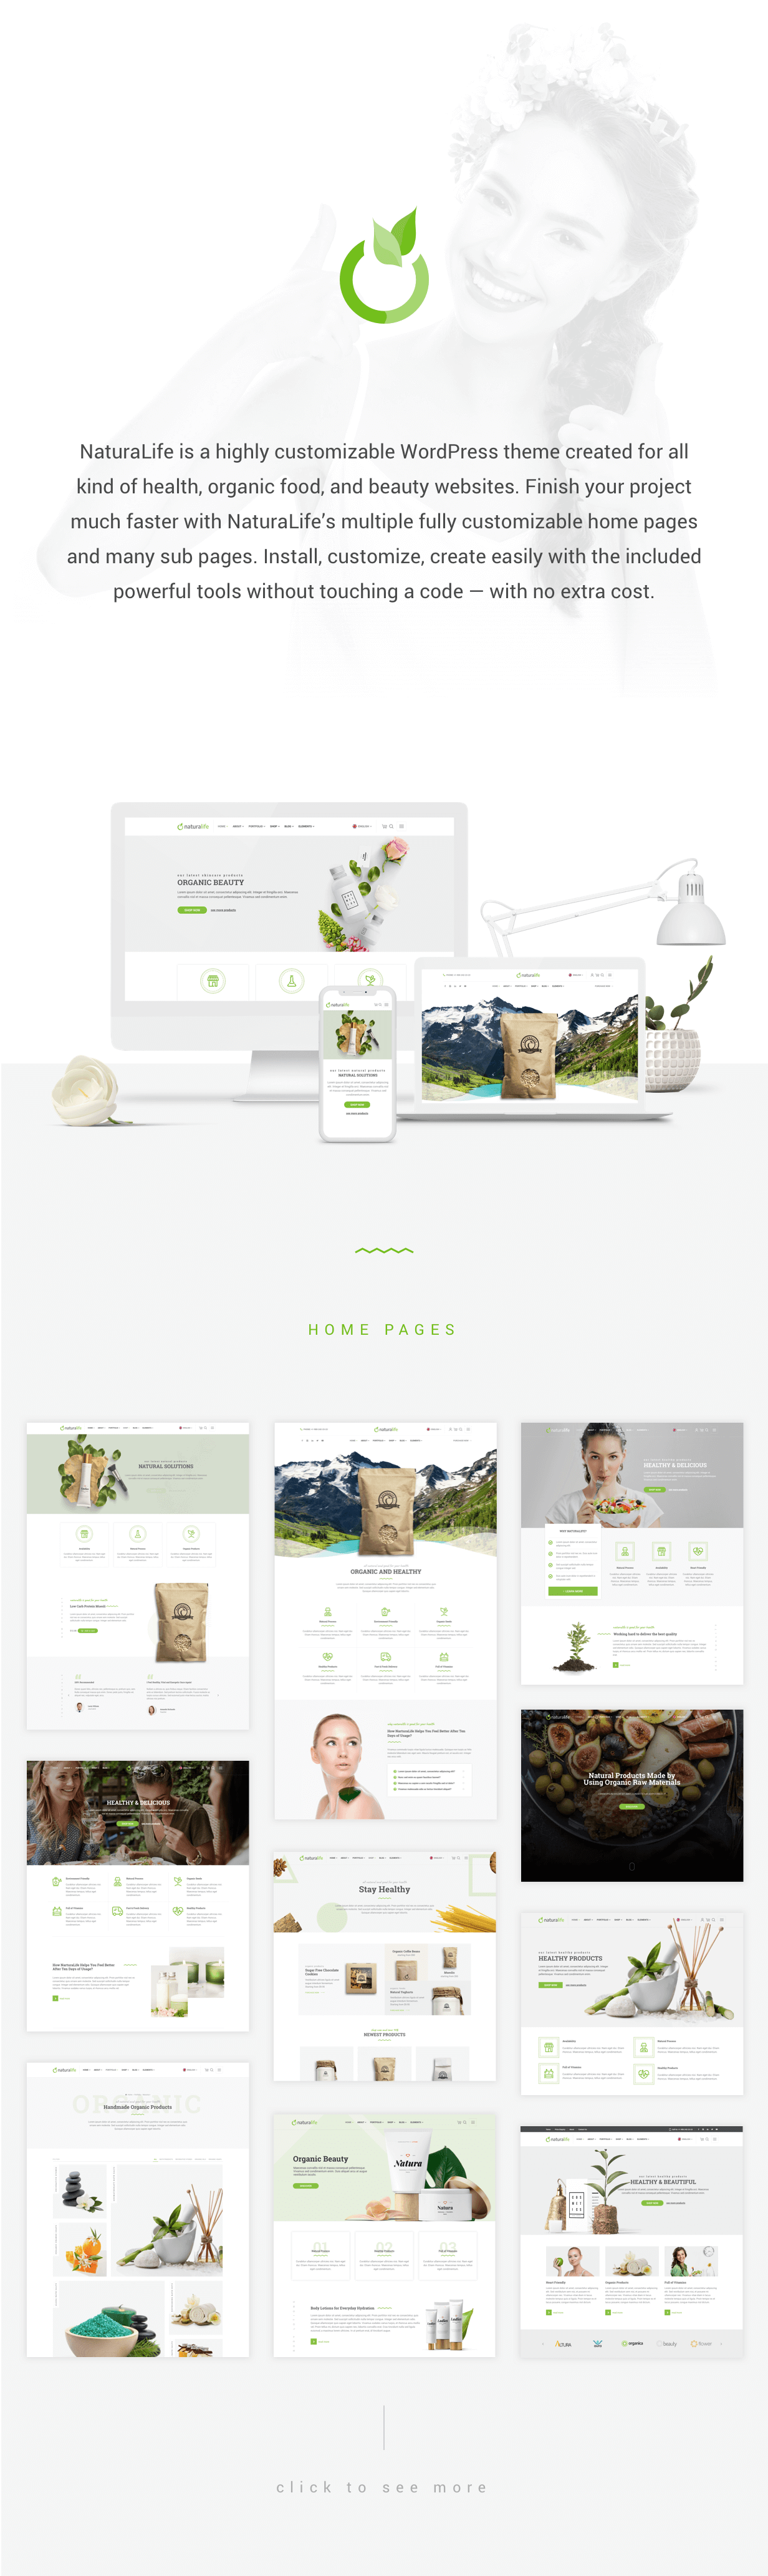 NaturaLife | Health & Organic WordPress Theme - 1